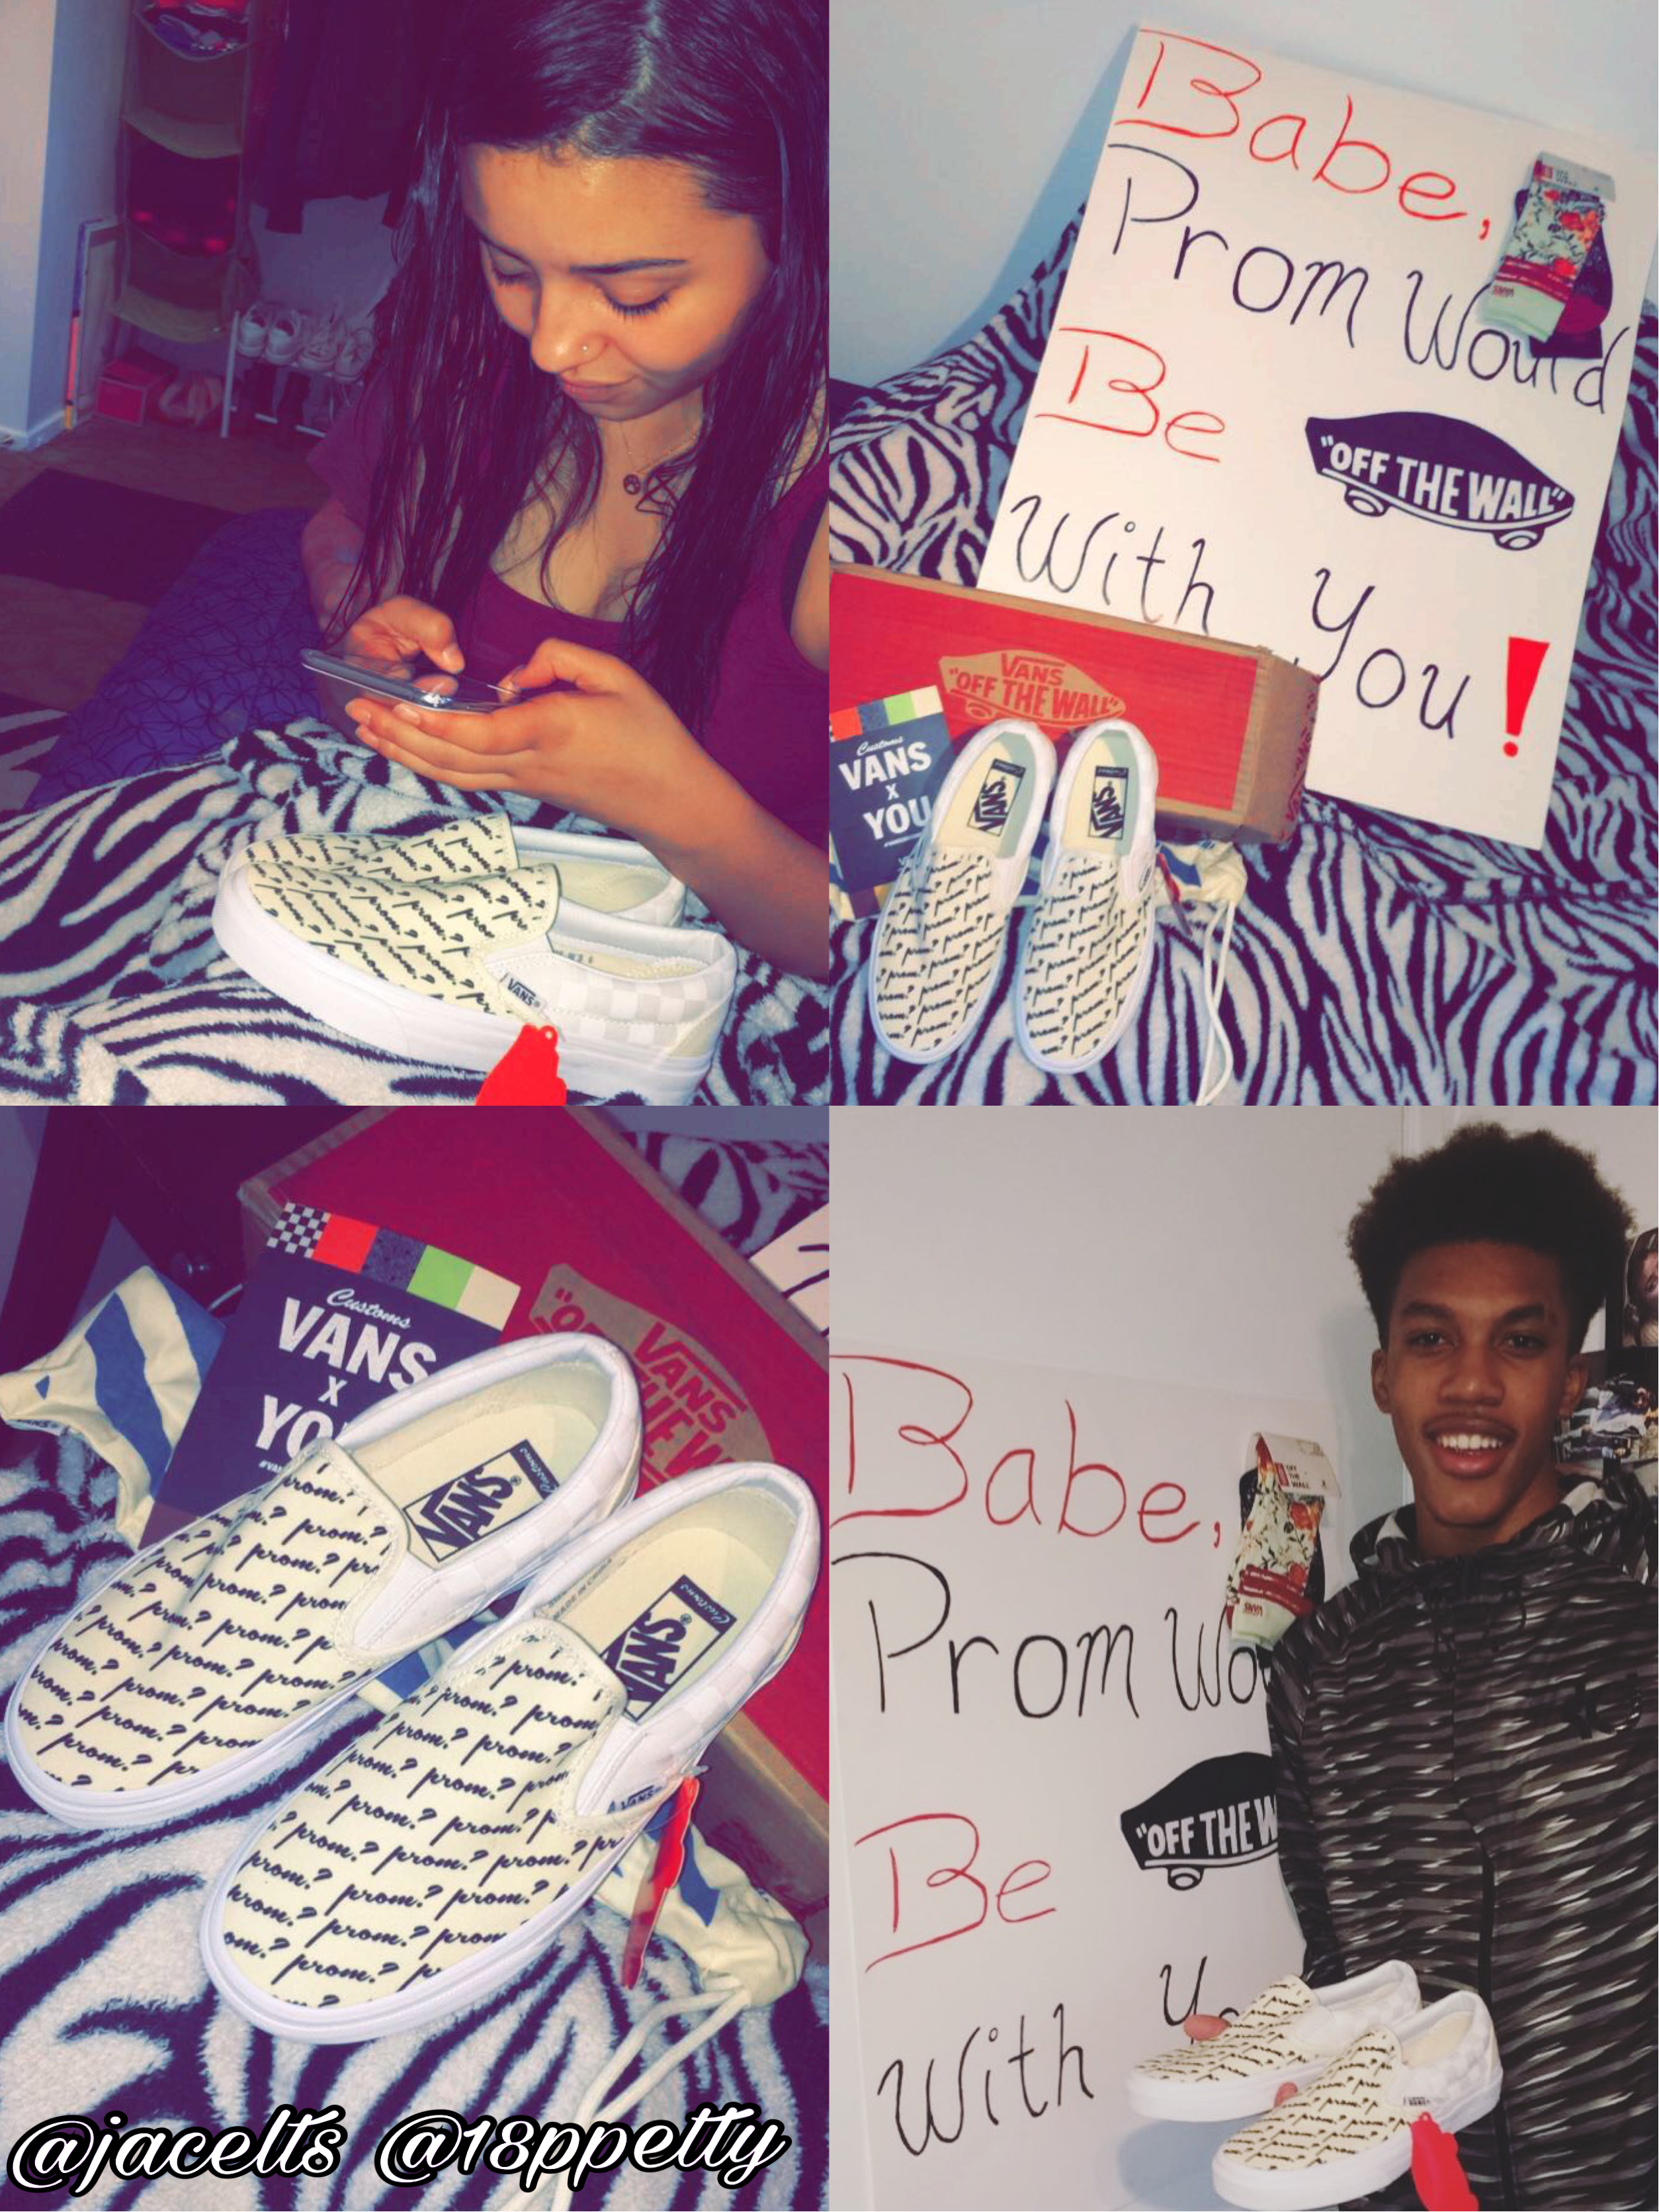 Absolute Best PROMPOSAL Ever! #prom #promposals #vans #prompicturescouples #promproposal